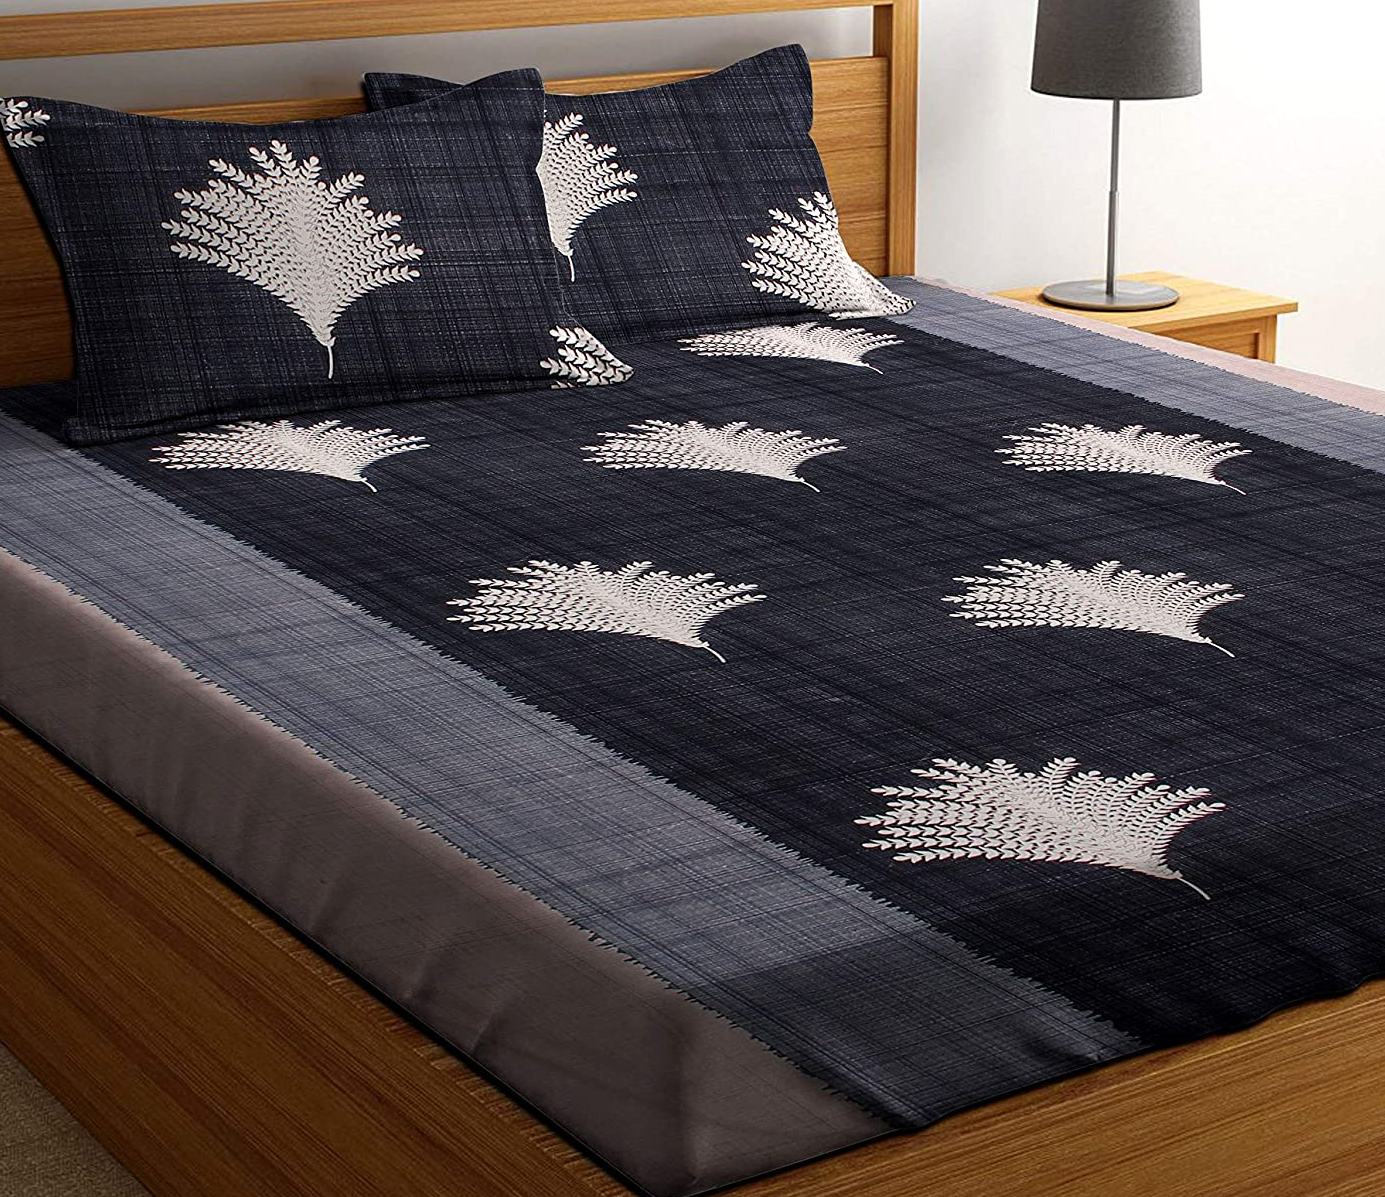 HIYANSHI-HOME-FURNISHING-Glace-Cotton-King-Size-Double-Bedsheet, Cotton Double Size Bed